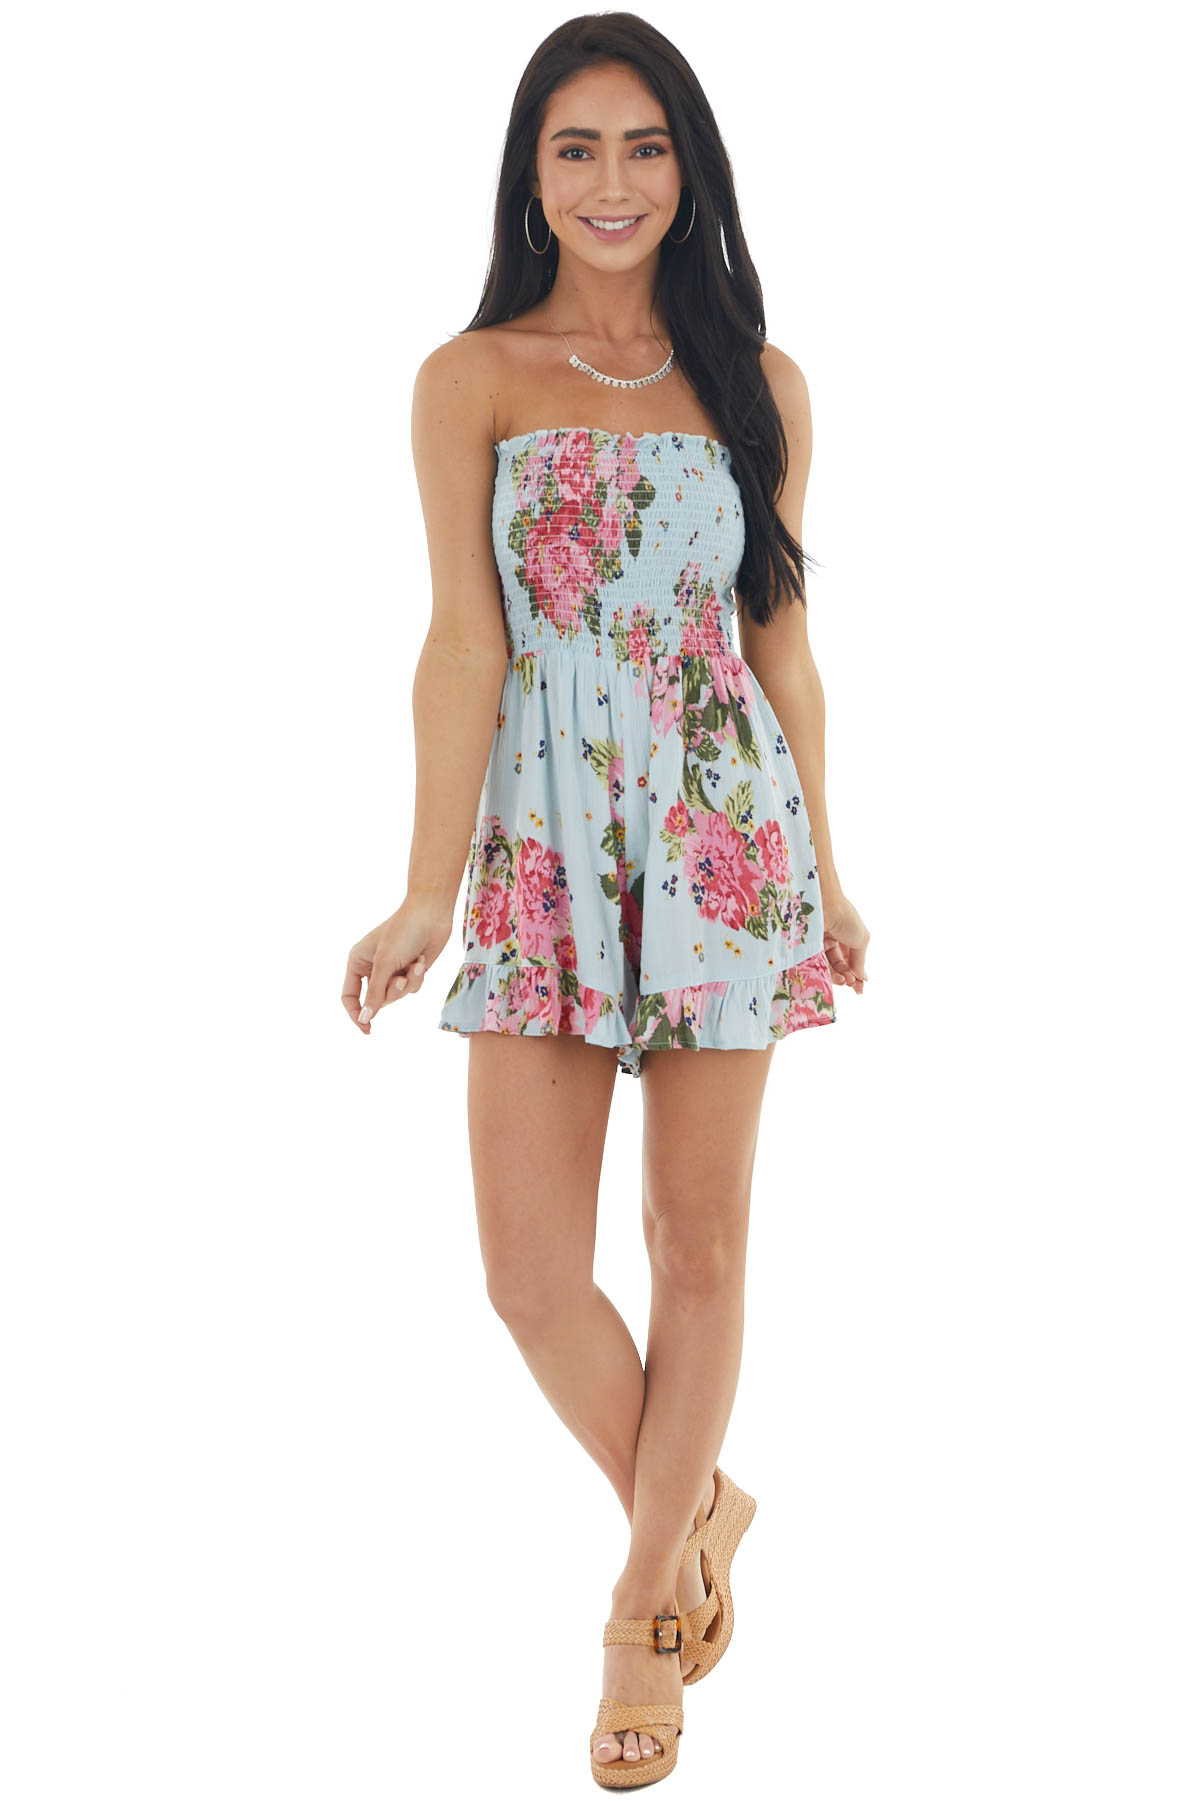 Sky Blue Floral Print Strapless Romper with Smocked Bodice